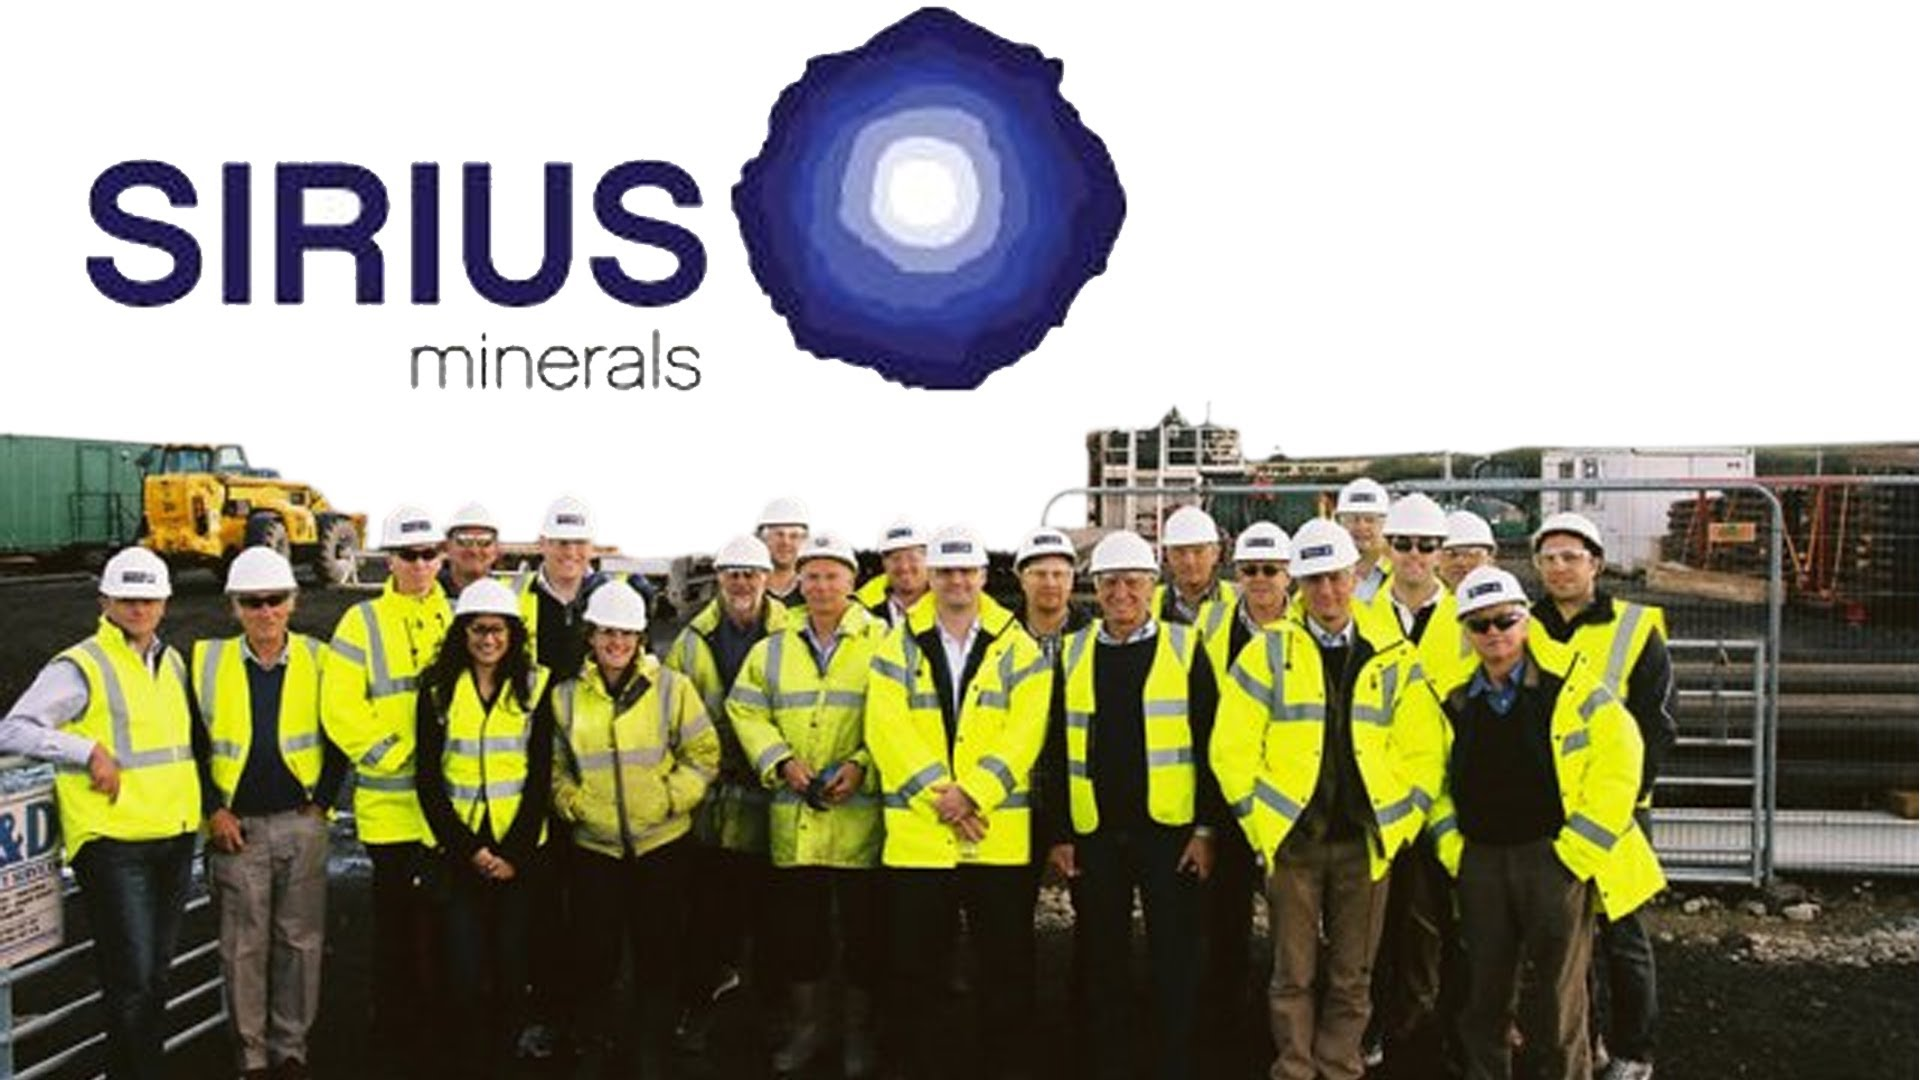 Sirius Minerals Set to Become Global Leader in Potash